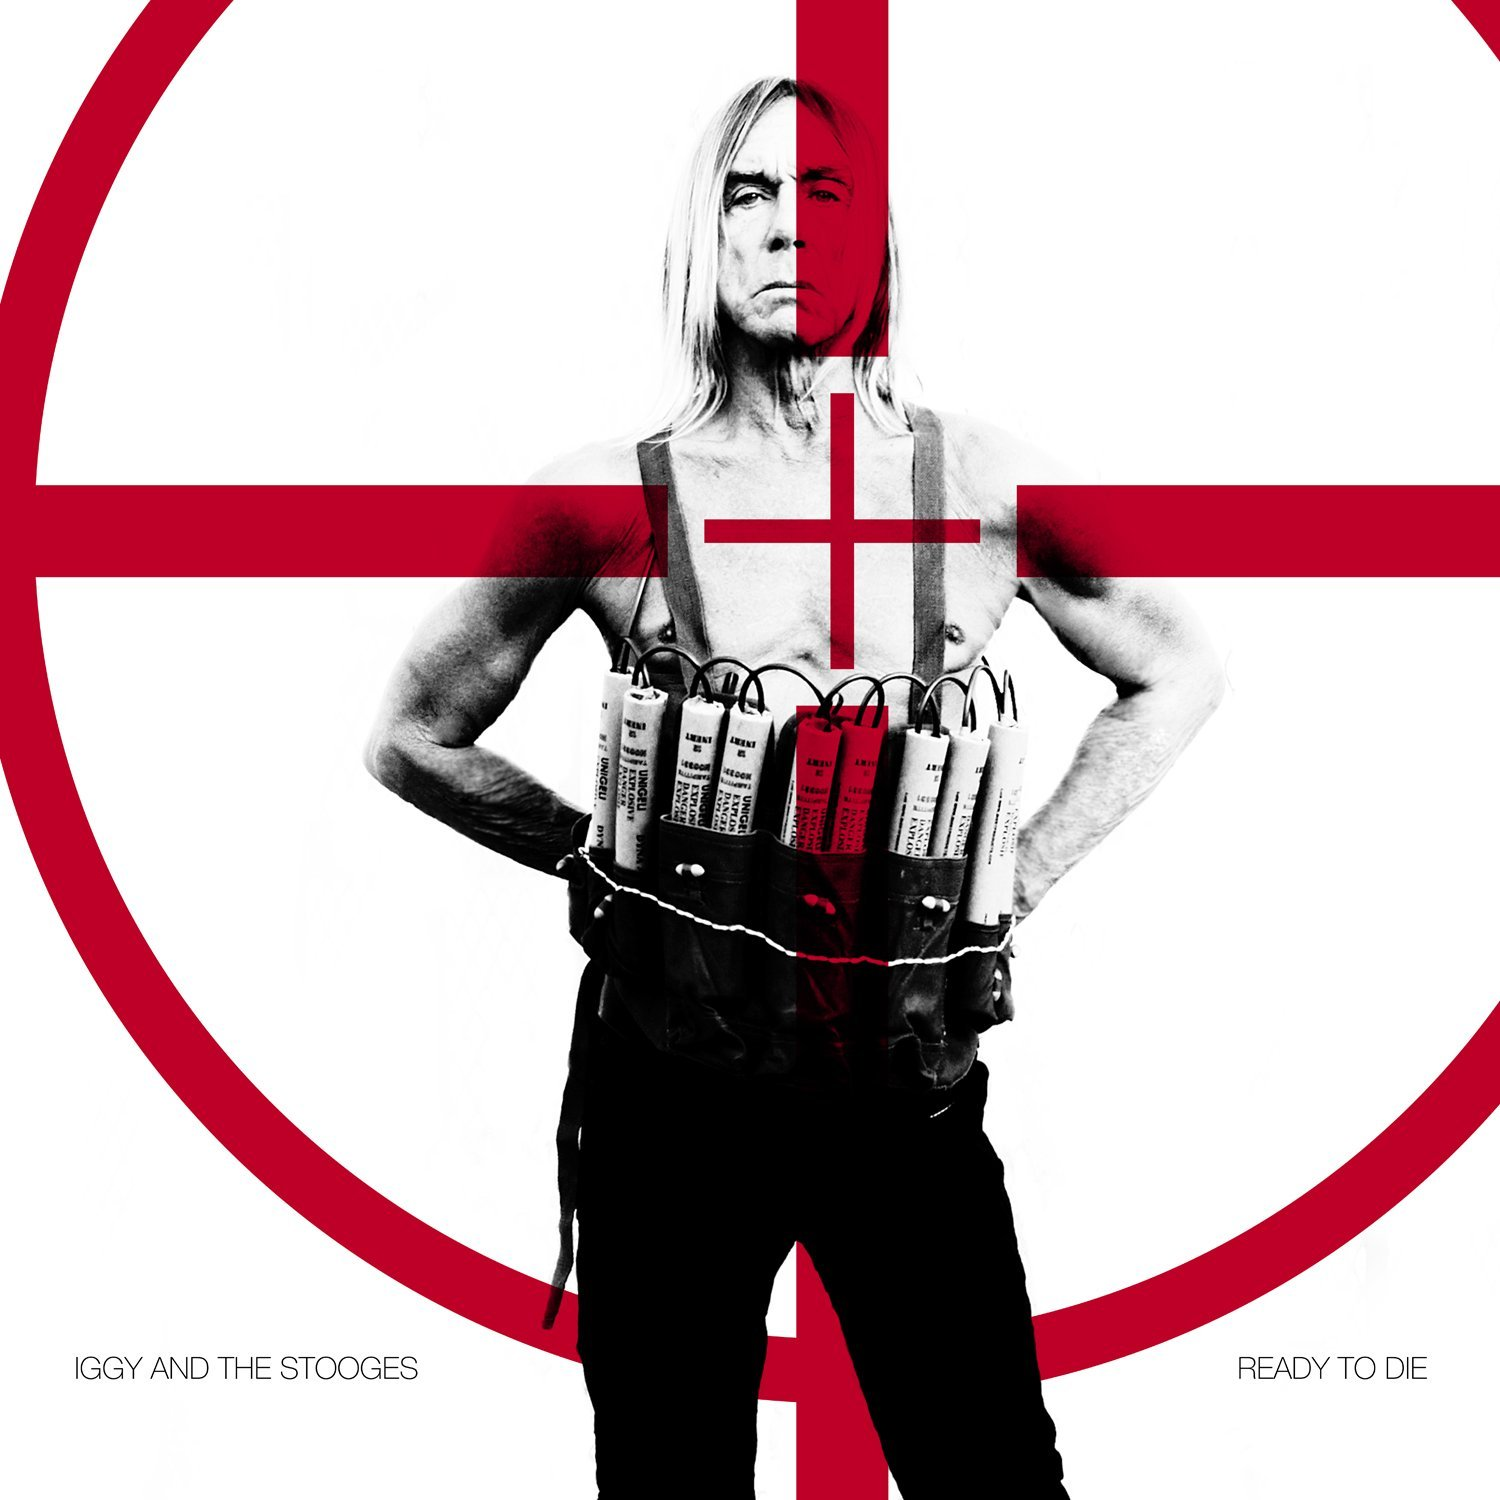 IGGY AND THE STOOGES ARE READY TO DIE!